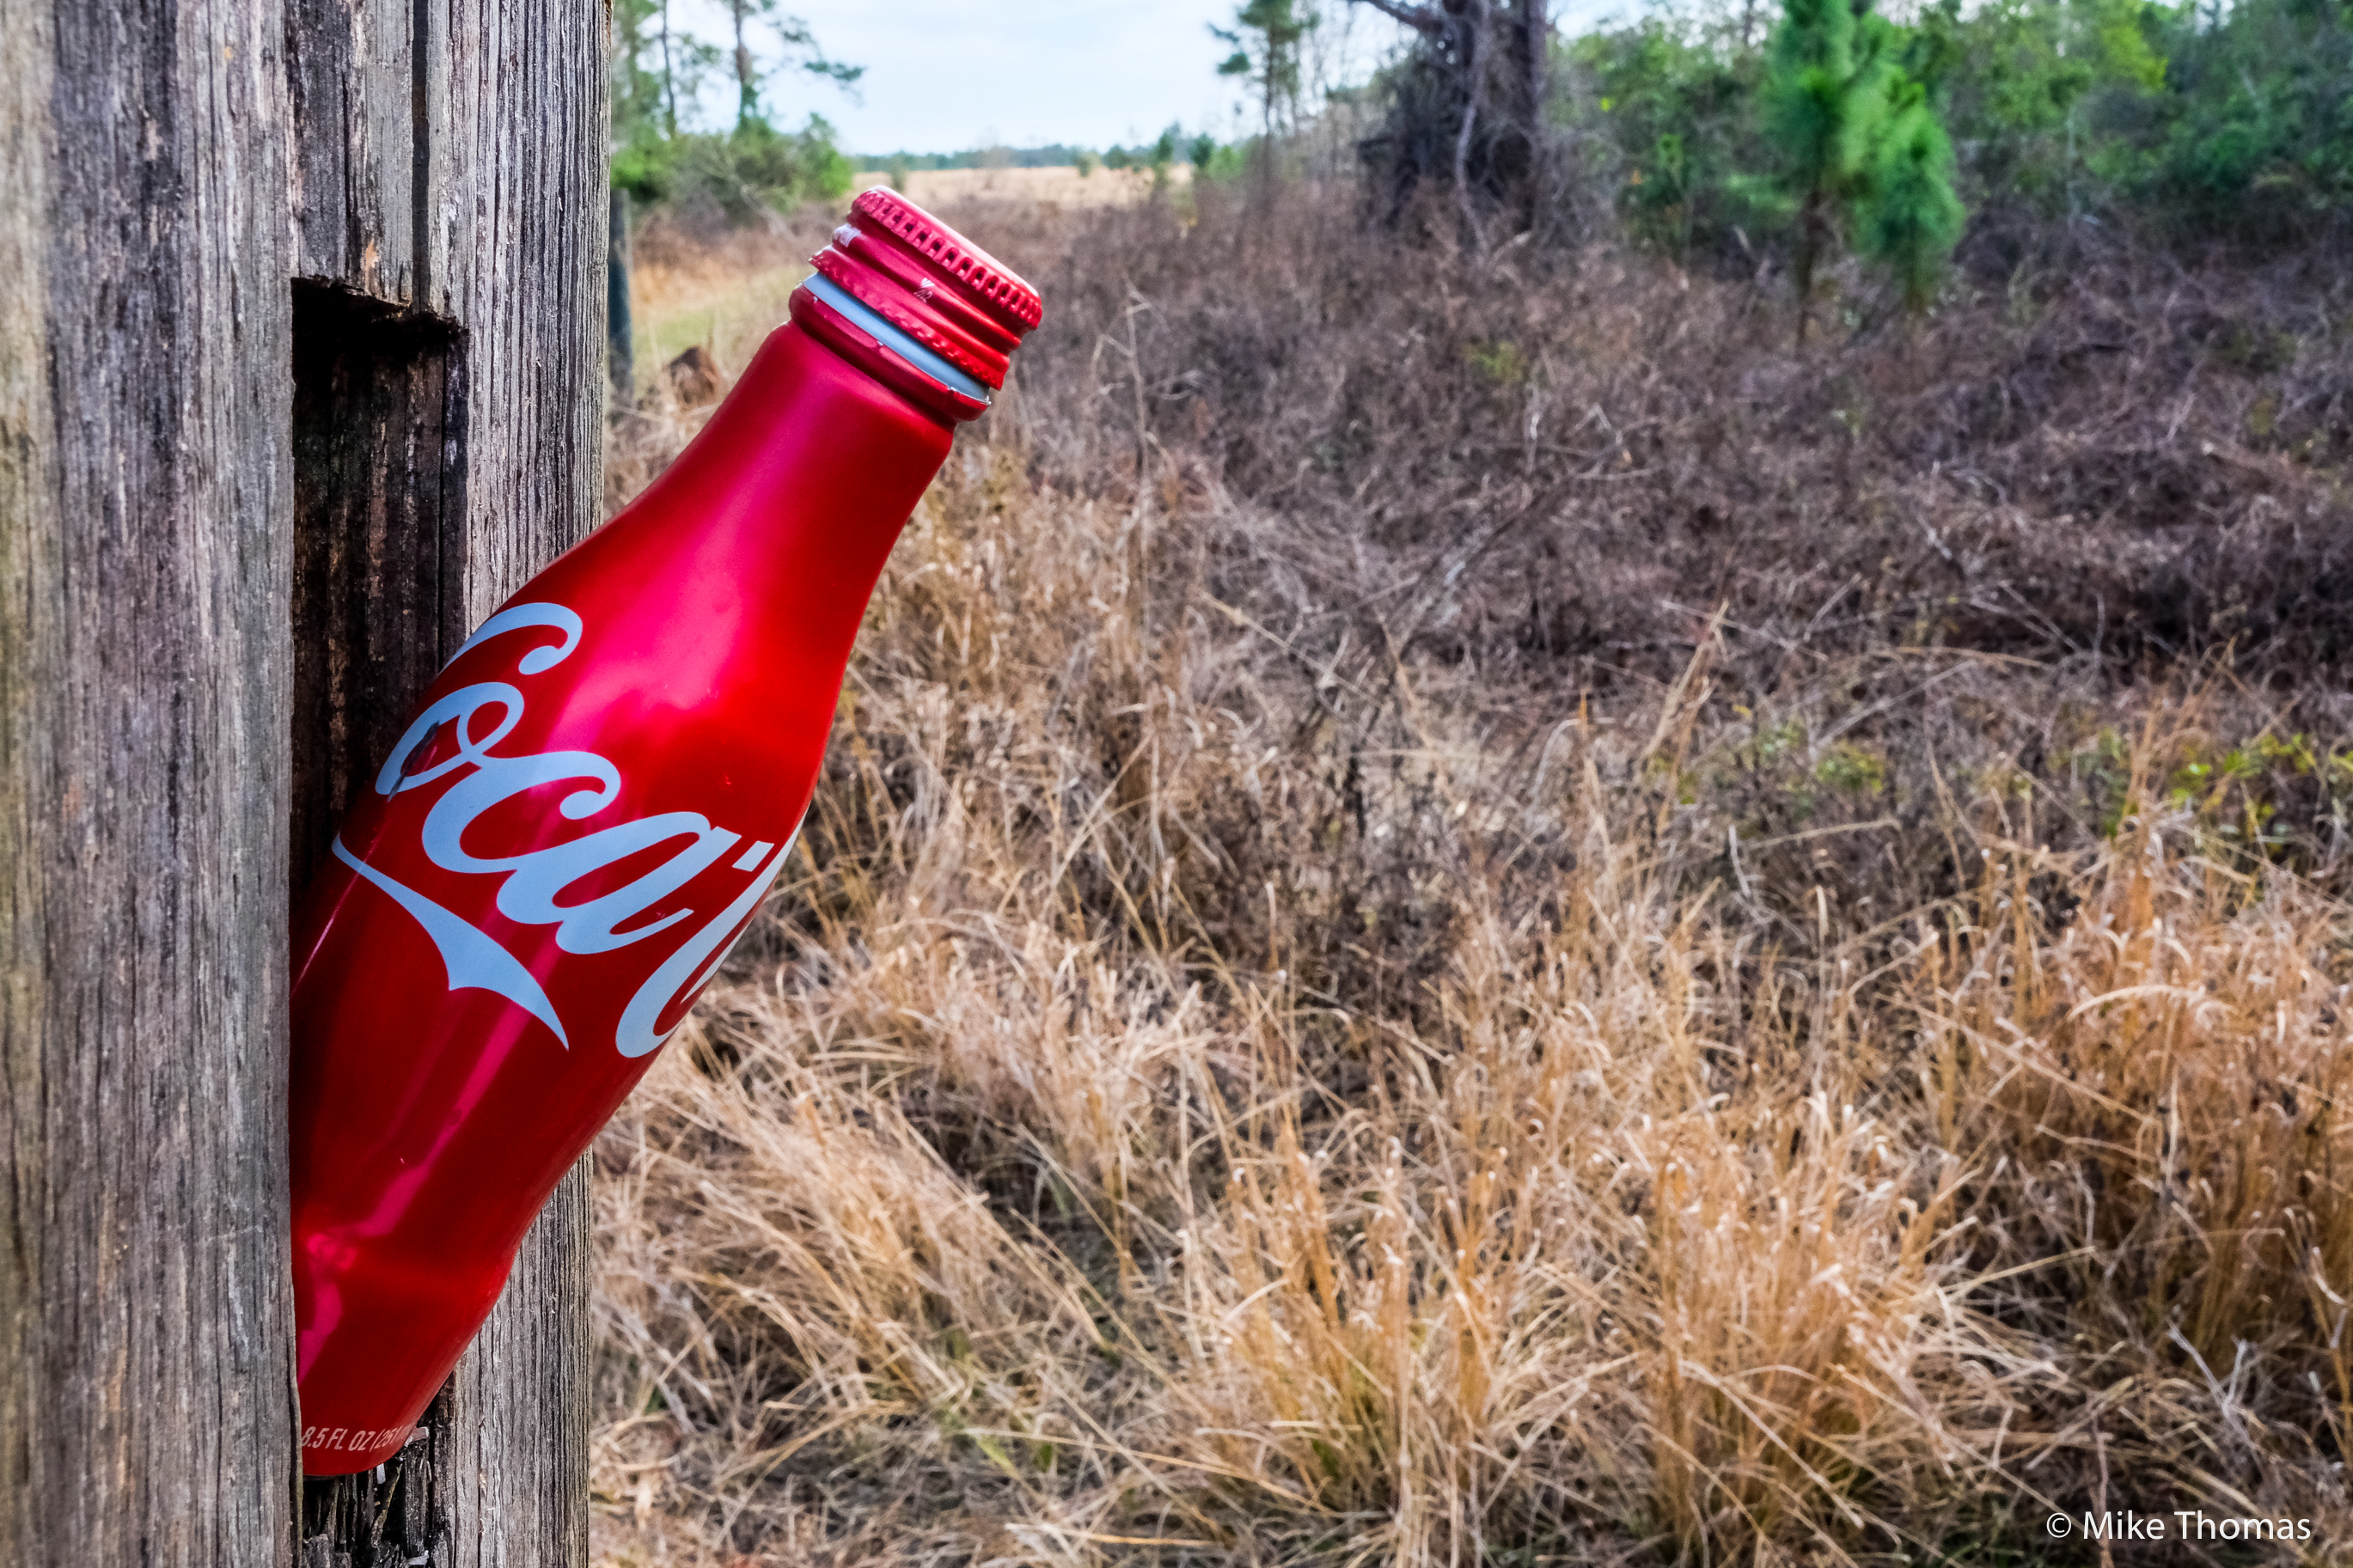 coke, cocal cola, soft drinks, things go better with coke, a smile and a coke, woods, forrest, nature